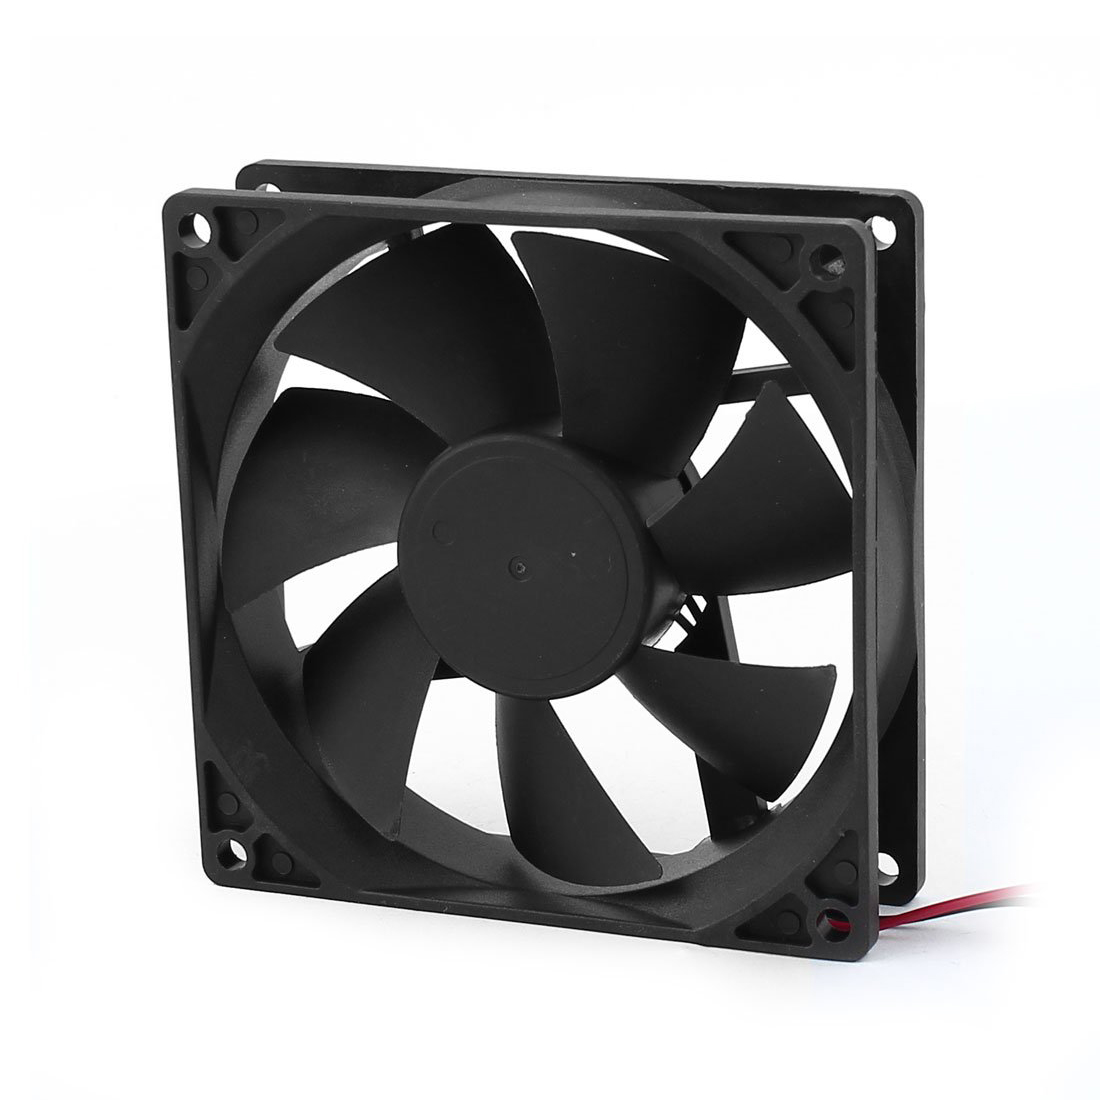 PROMOTION! 90mm x 25mm 9025 2pin 12V DC Brushless PC Case CPU Cooler Cooling Fan promotion hot 92mm x 25mm 24v 2pin sleeve bearing cooling fan for pc case cpu cooler